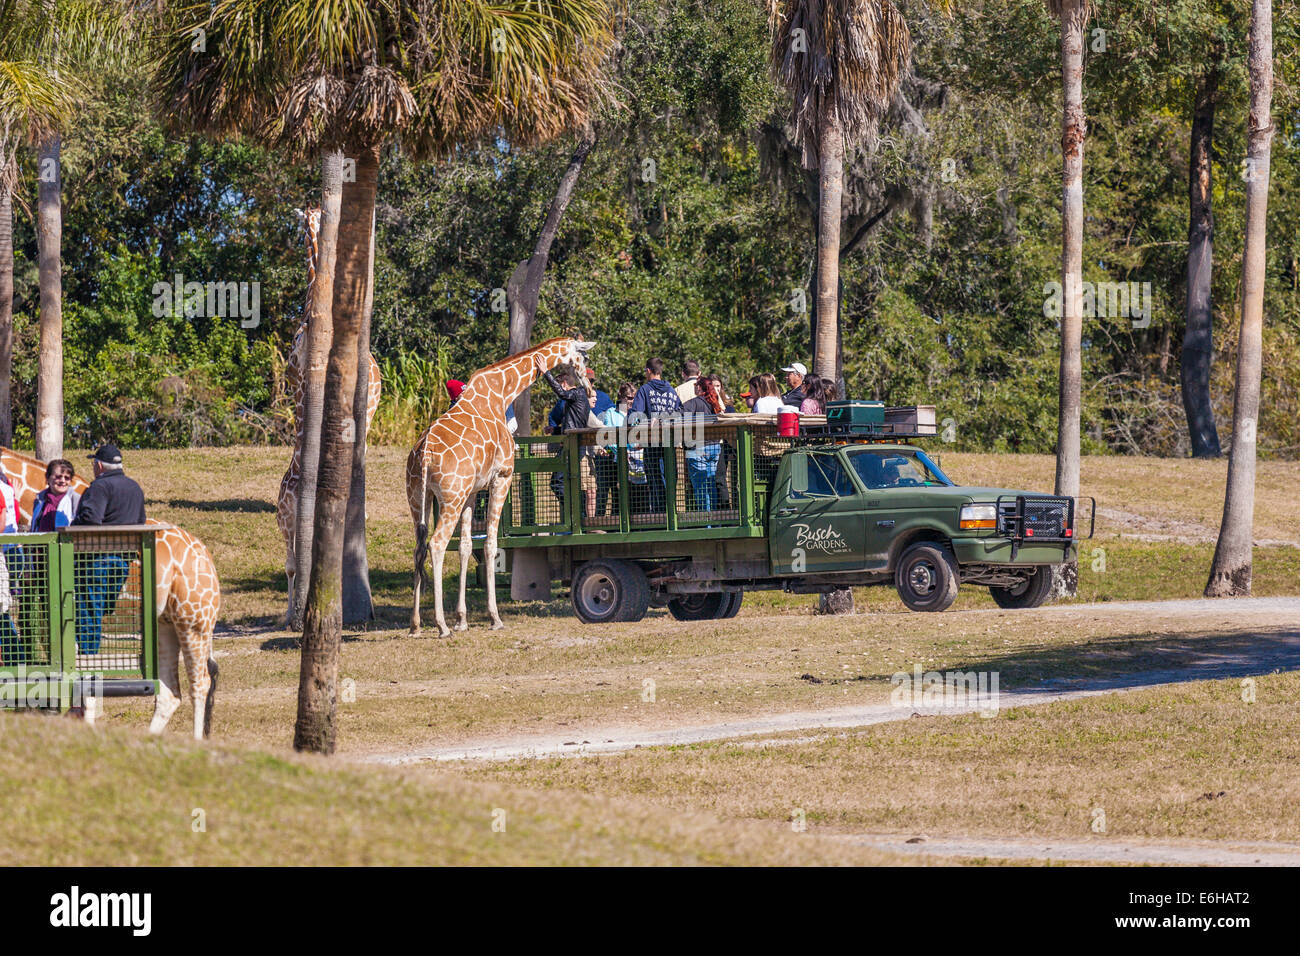 Park Guests Feed And Pet Giraffes On The Serengeti Safari Tour At